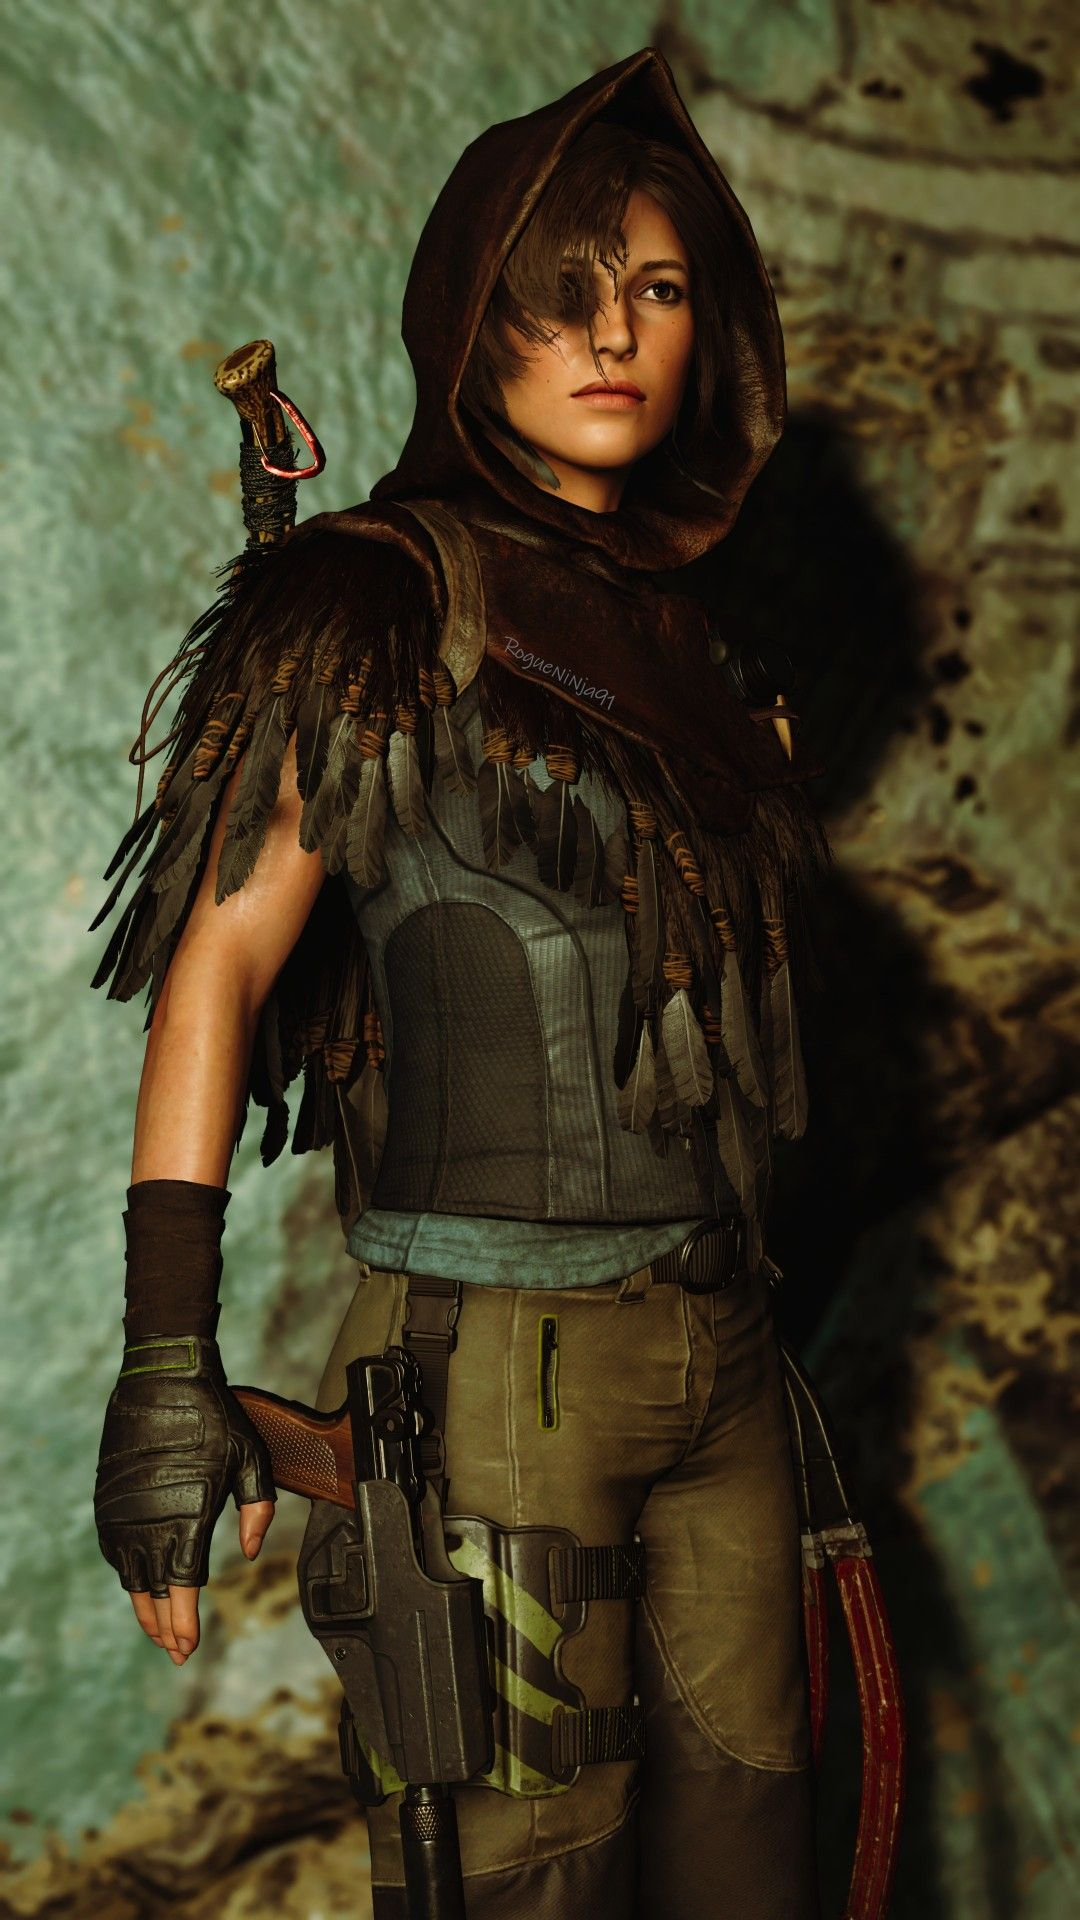 Pin by M on Games in 2021   Tomb raider game, Tomb raider